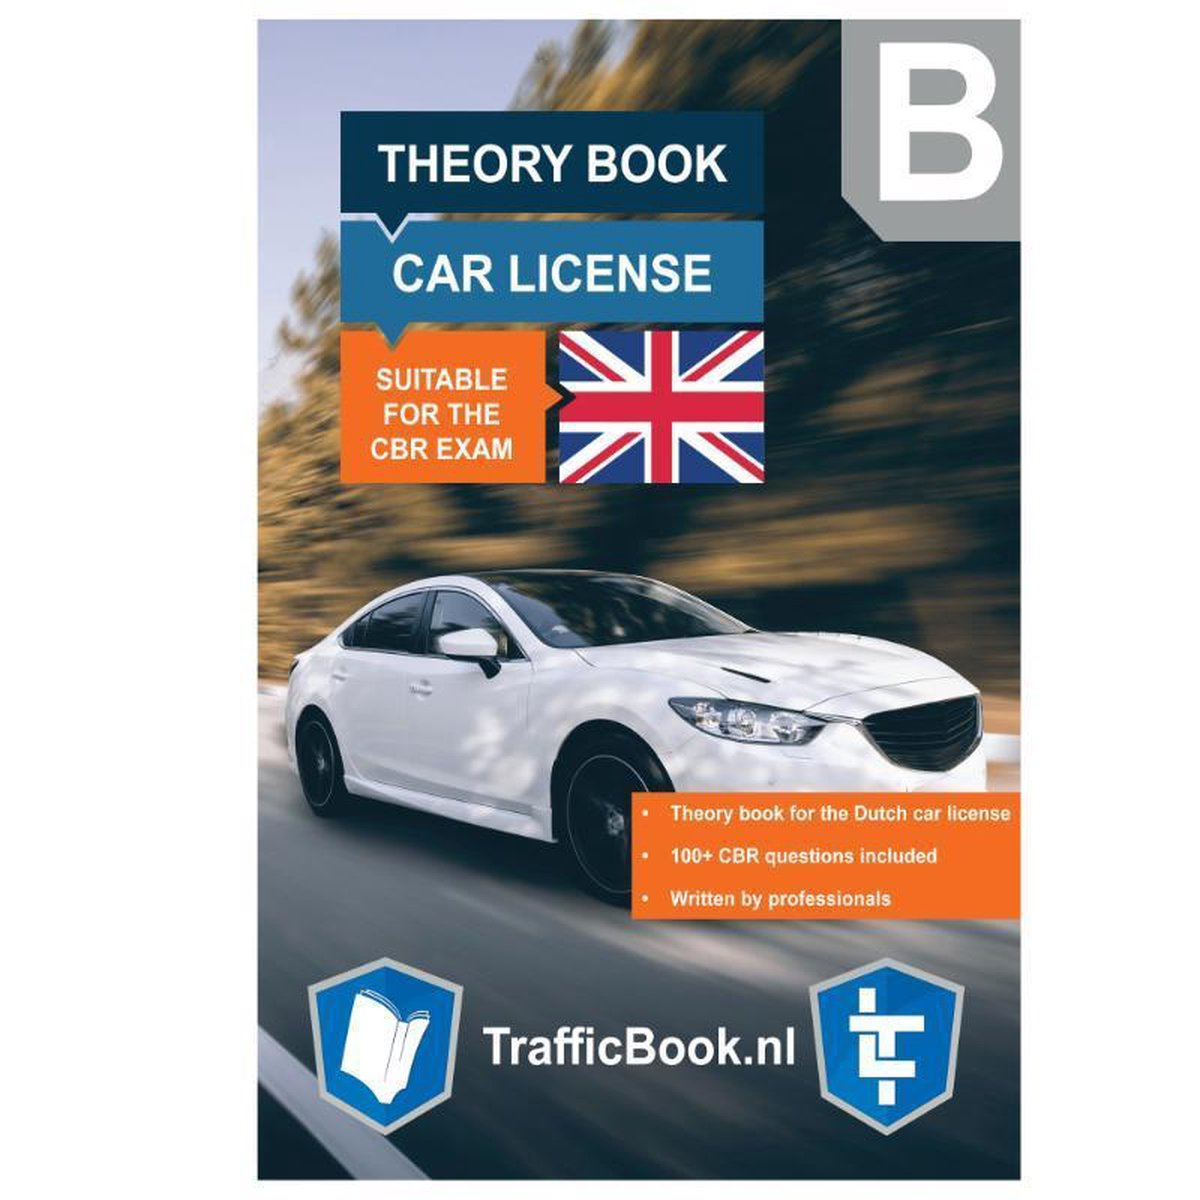 Auto Theorieboek Engels 2021 (English) – Car Theory Book in English for Dutch Driving License